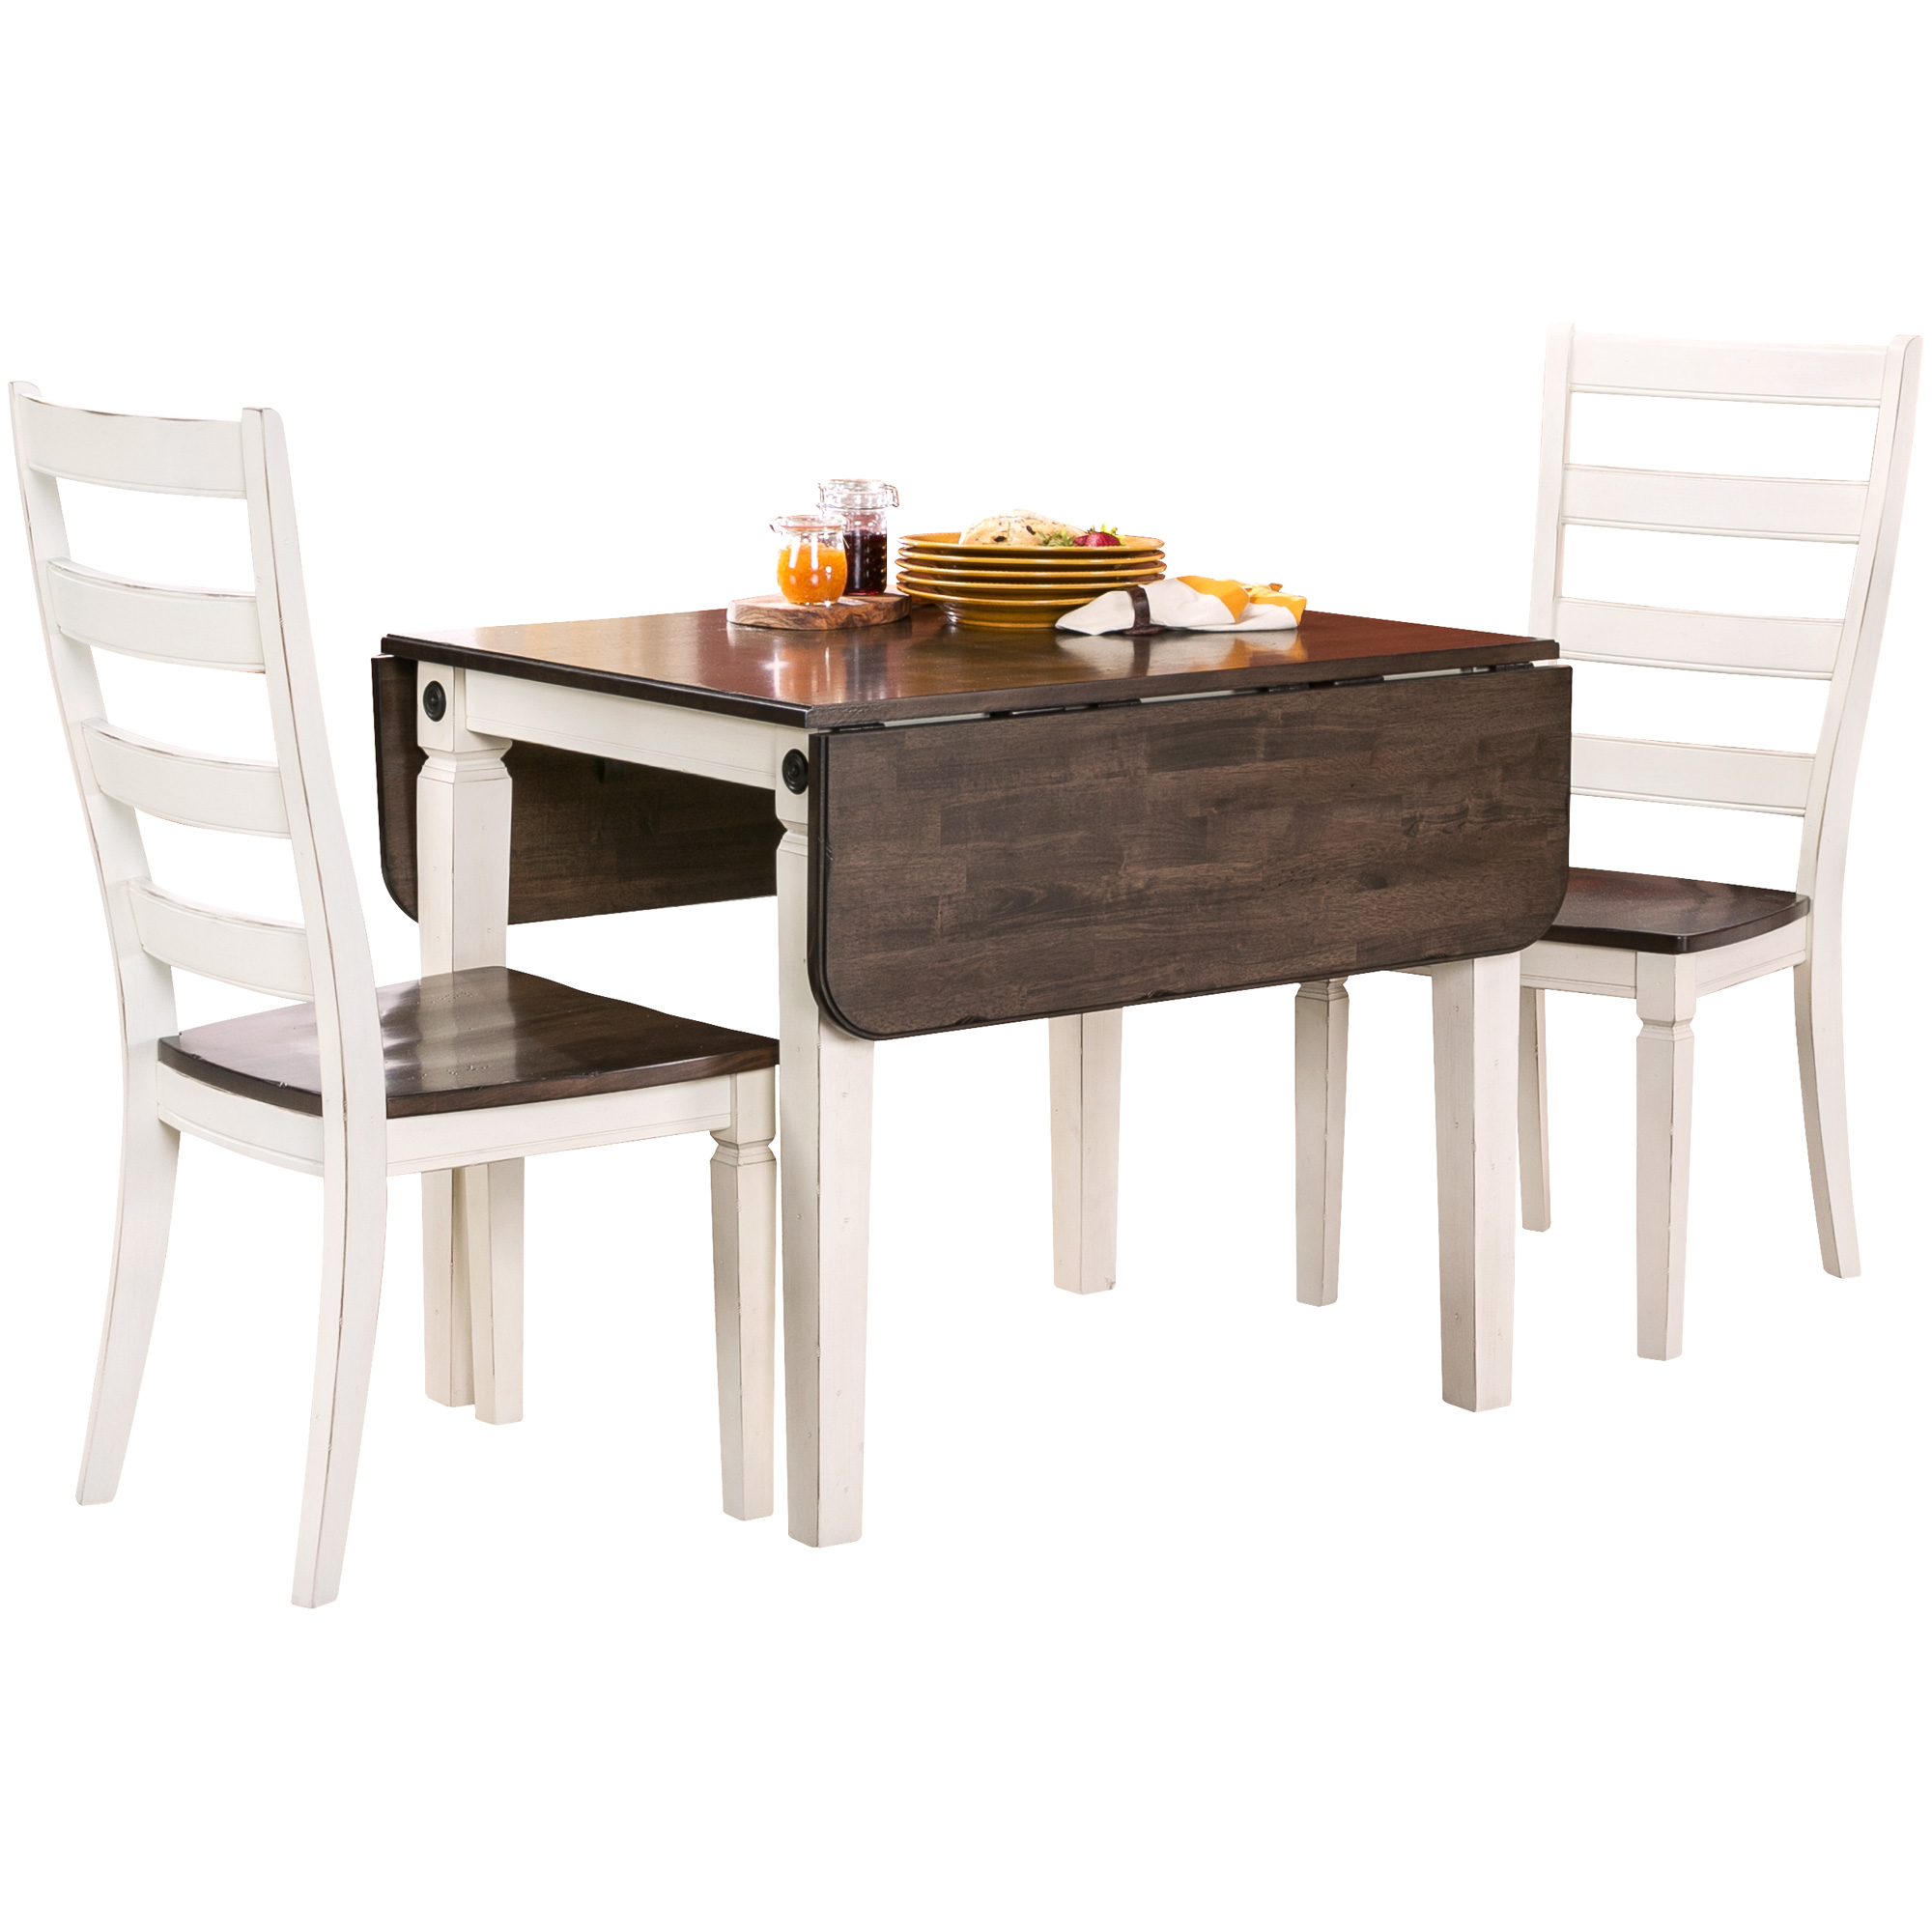 Intercon | Glennwood 3 Piece Antique White Dining Set